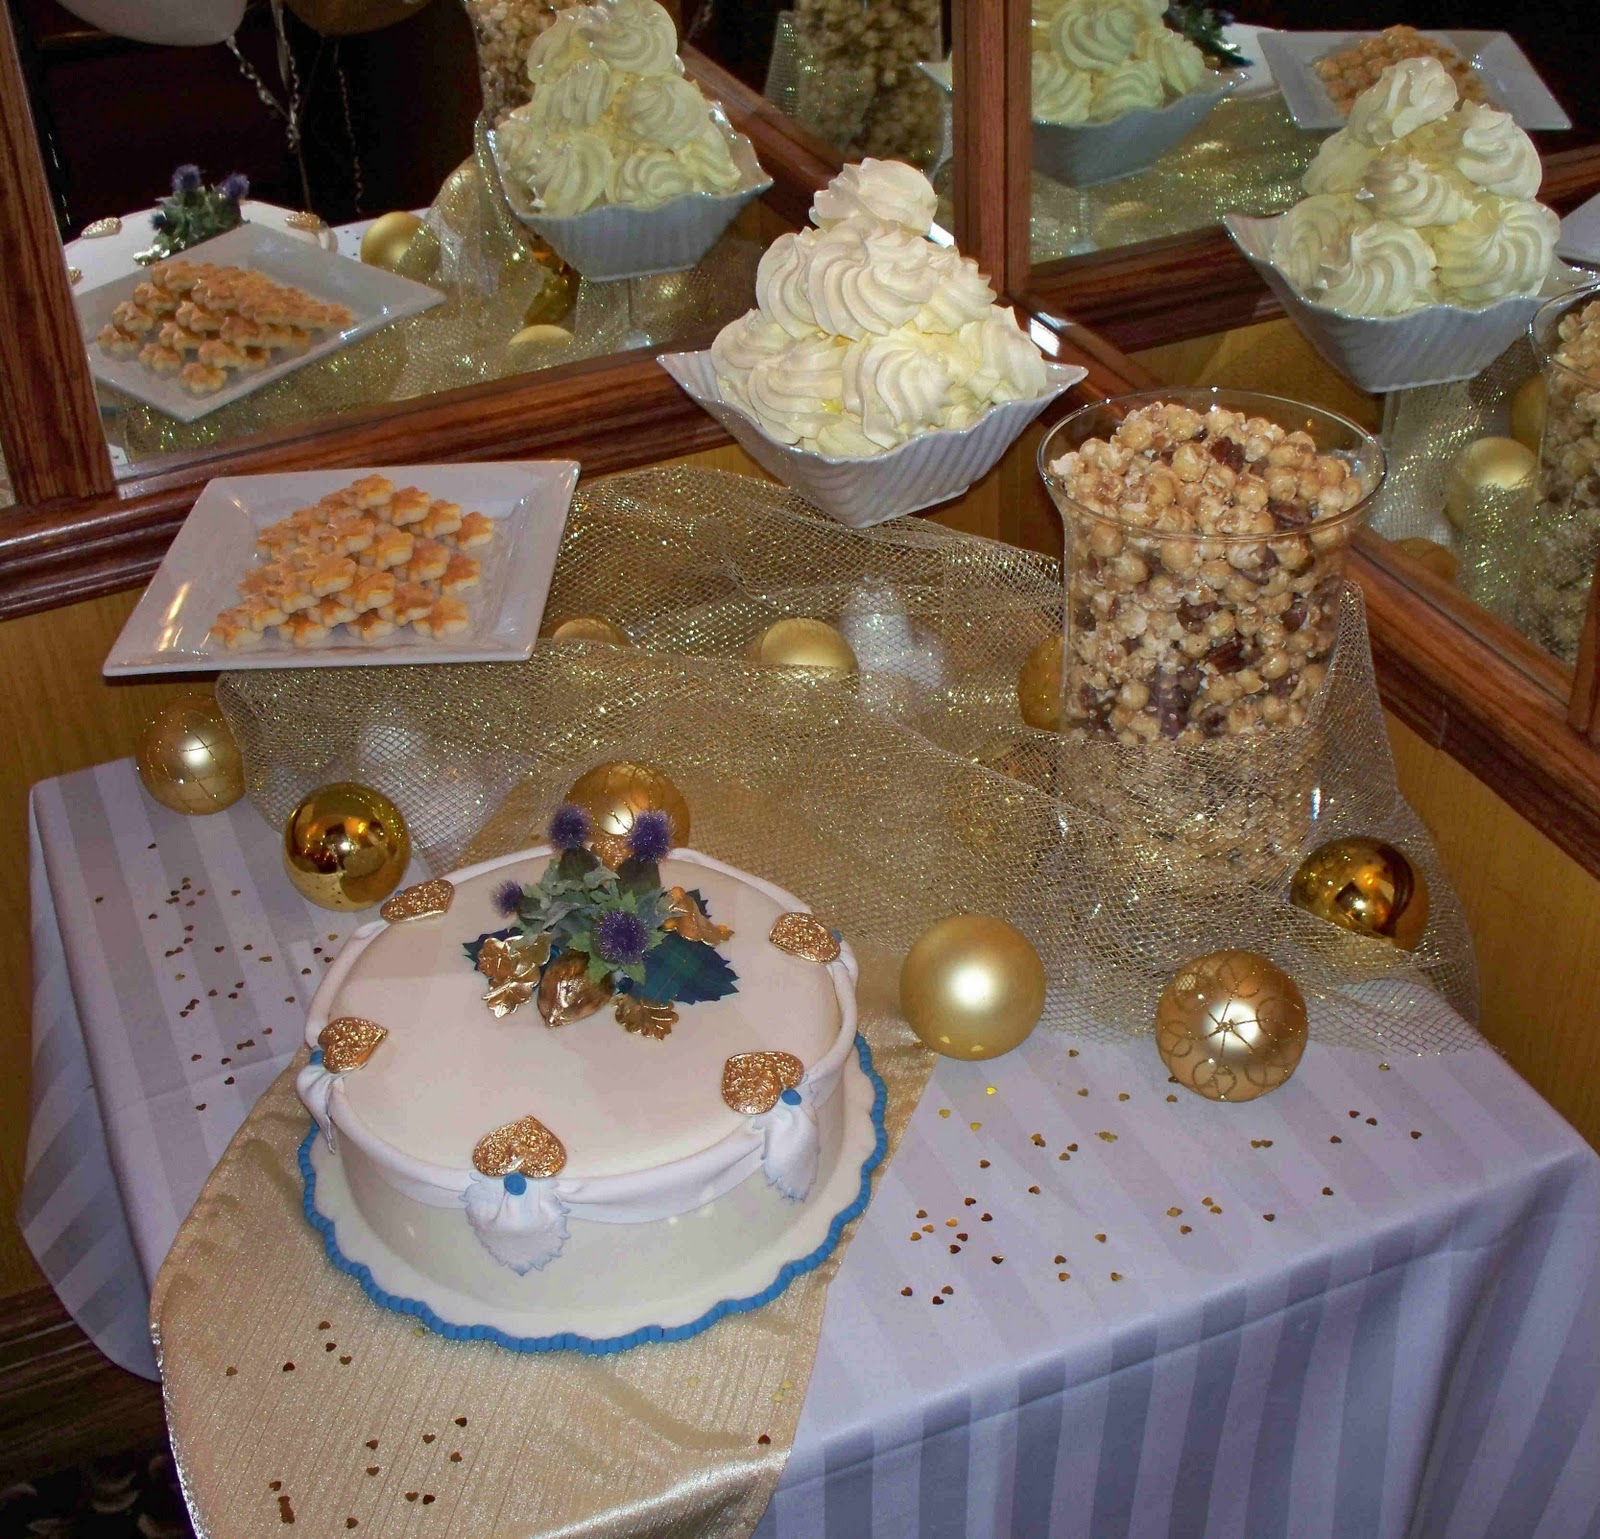 50th Wedding Anniversary Table Ideas: The Life Of A Suburban Princess: 50th Anniversary Party